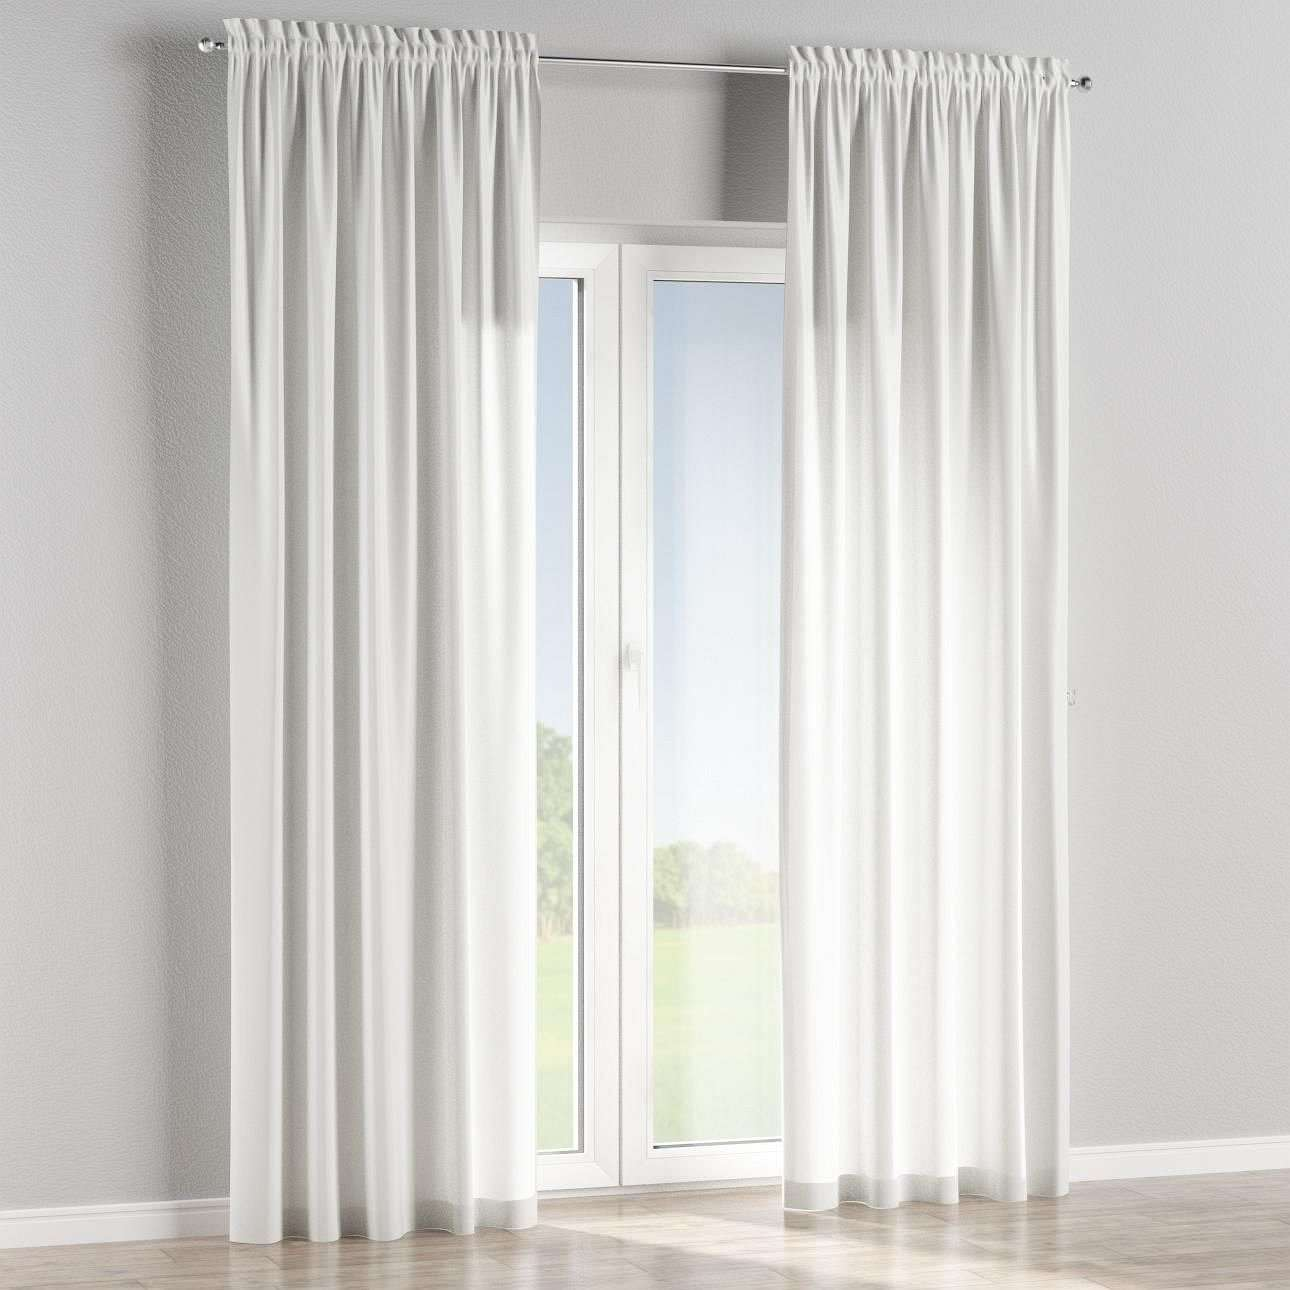 Slot and frill curtains in collection Milano, fabric: 150-28